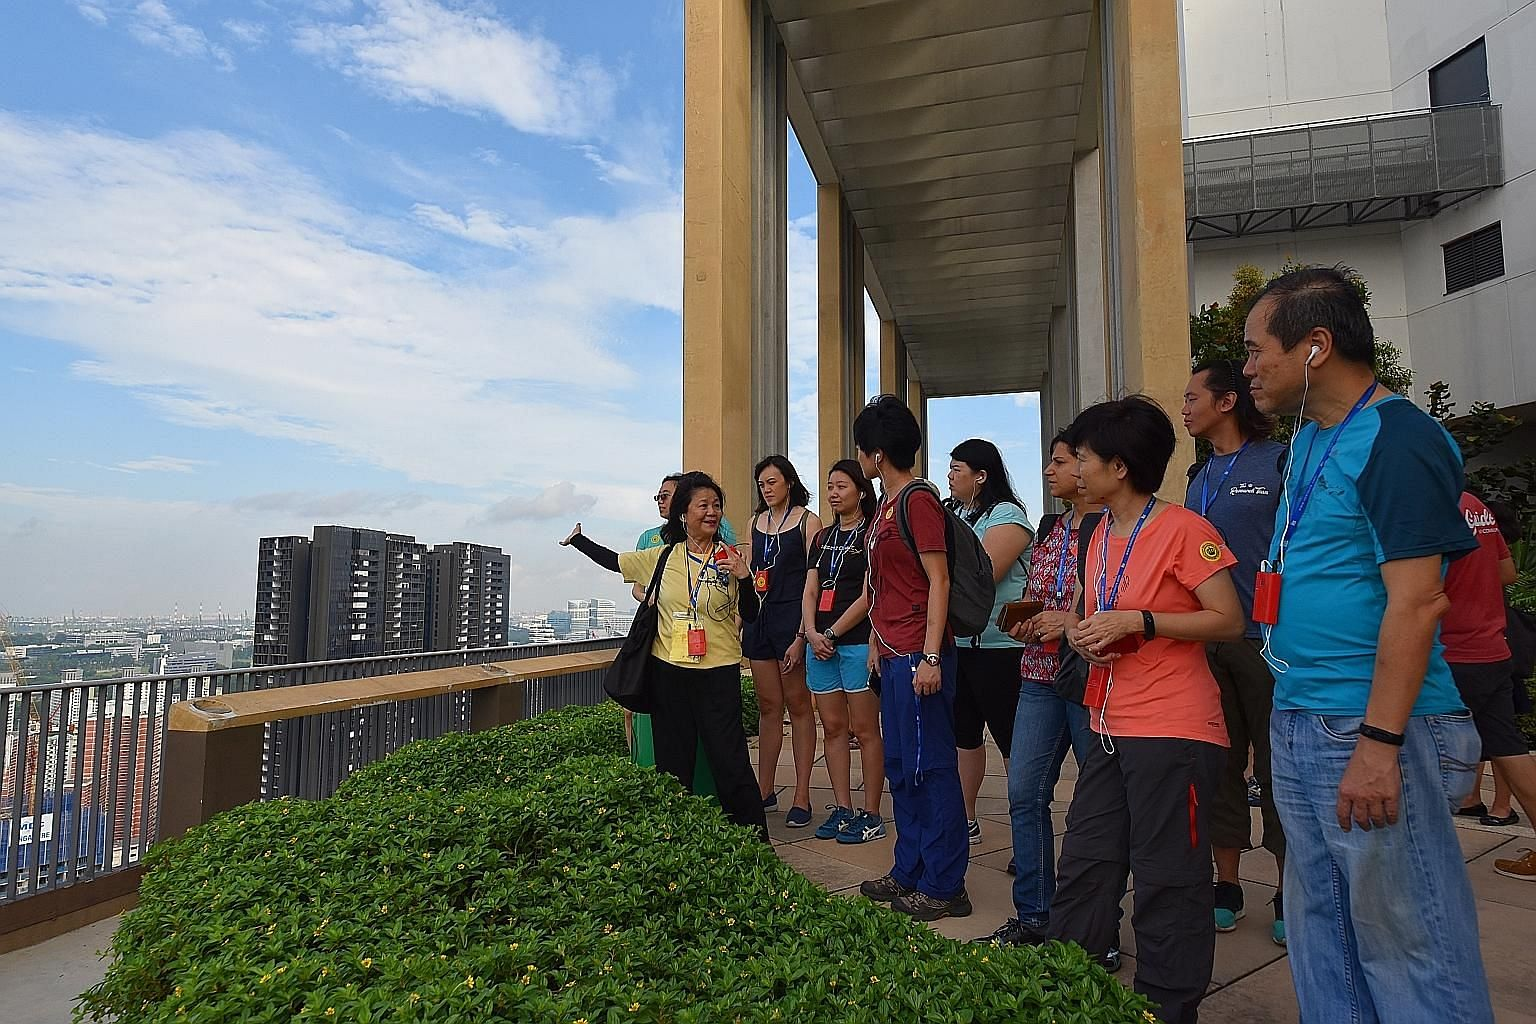 Ms May Hui, 64, a volunteer guide from My Community, leading a group on the heritage walk at the rooftop of Skyville@Dawson yesterday. My Community has a pool of about 150 volunteers who lead participants on the tours.